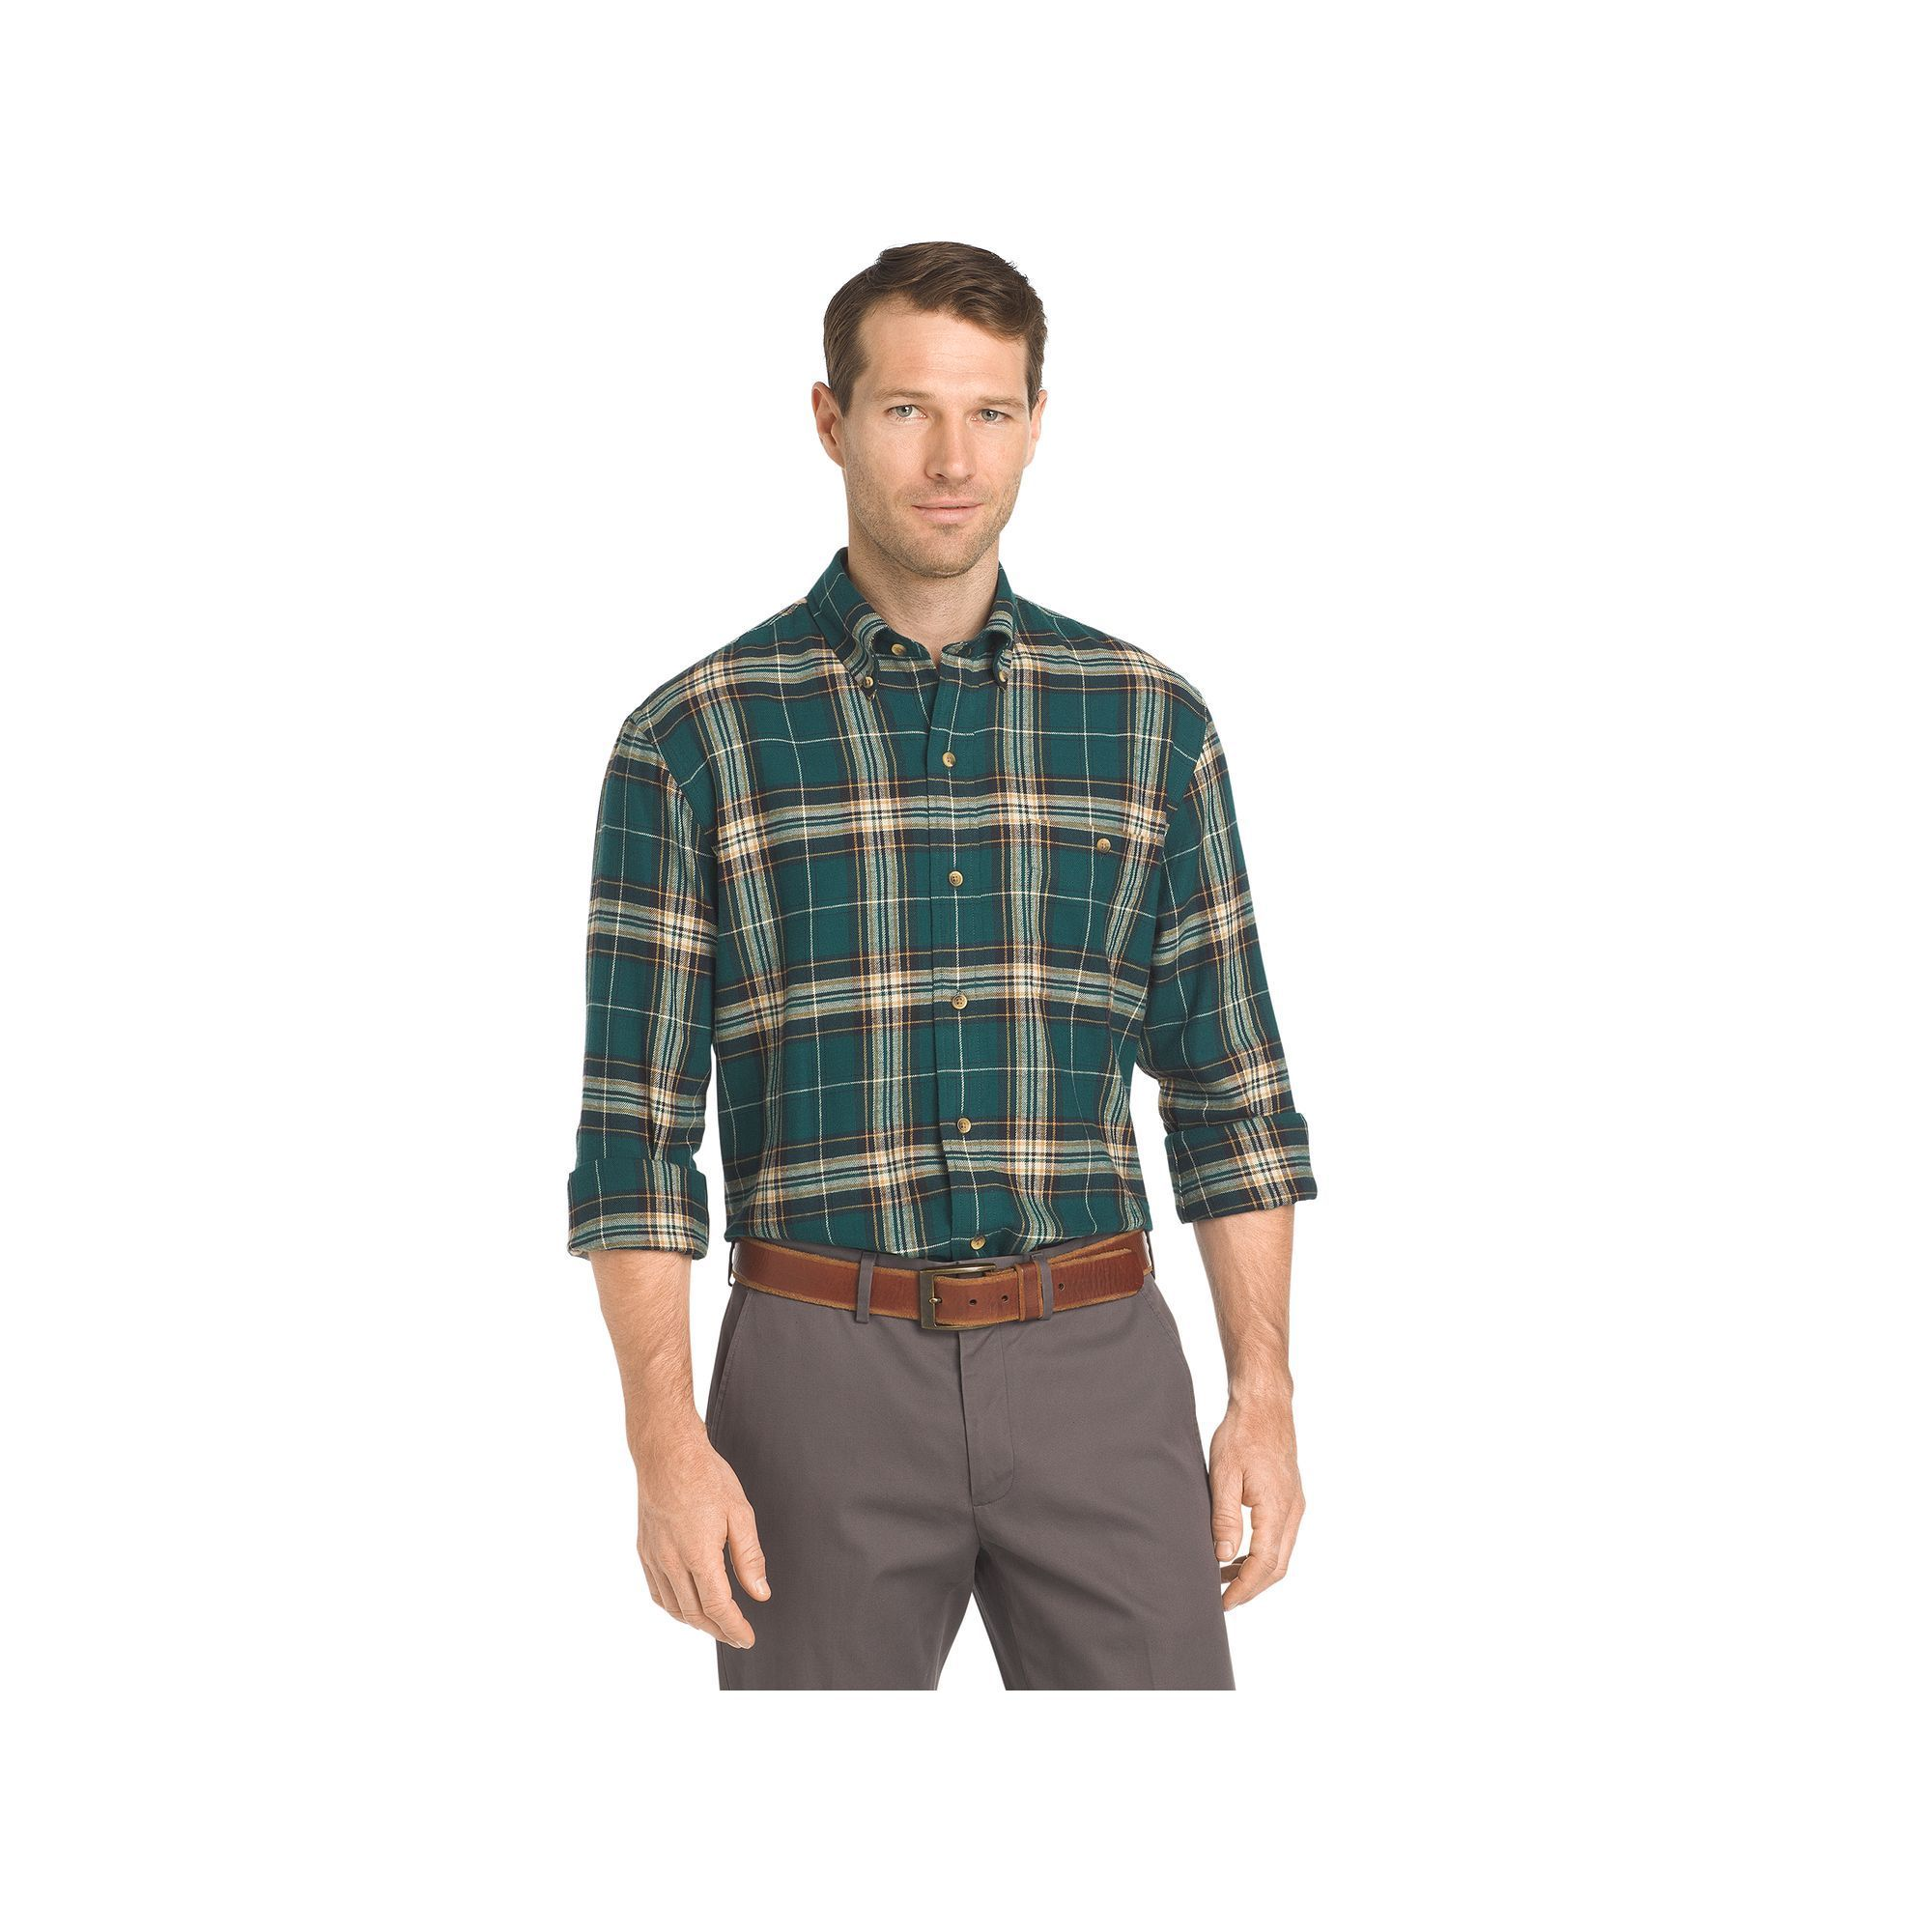 Flannel shirts at kohl's  Big u Tall Arrow Saranac RegularFit Plaid Flannel ButtonDown Shirt